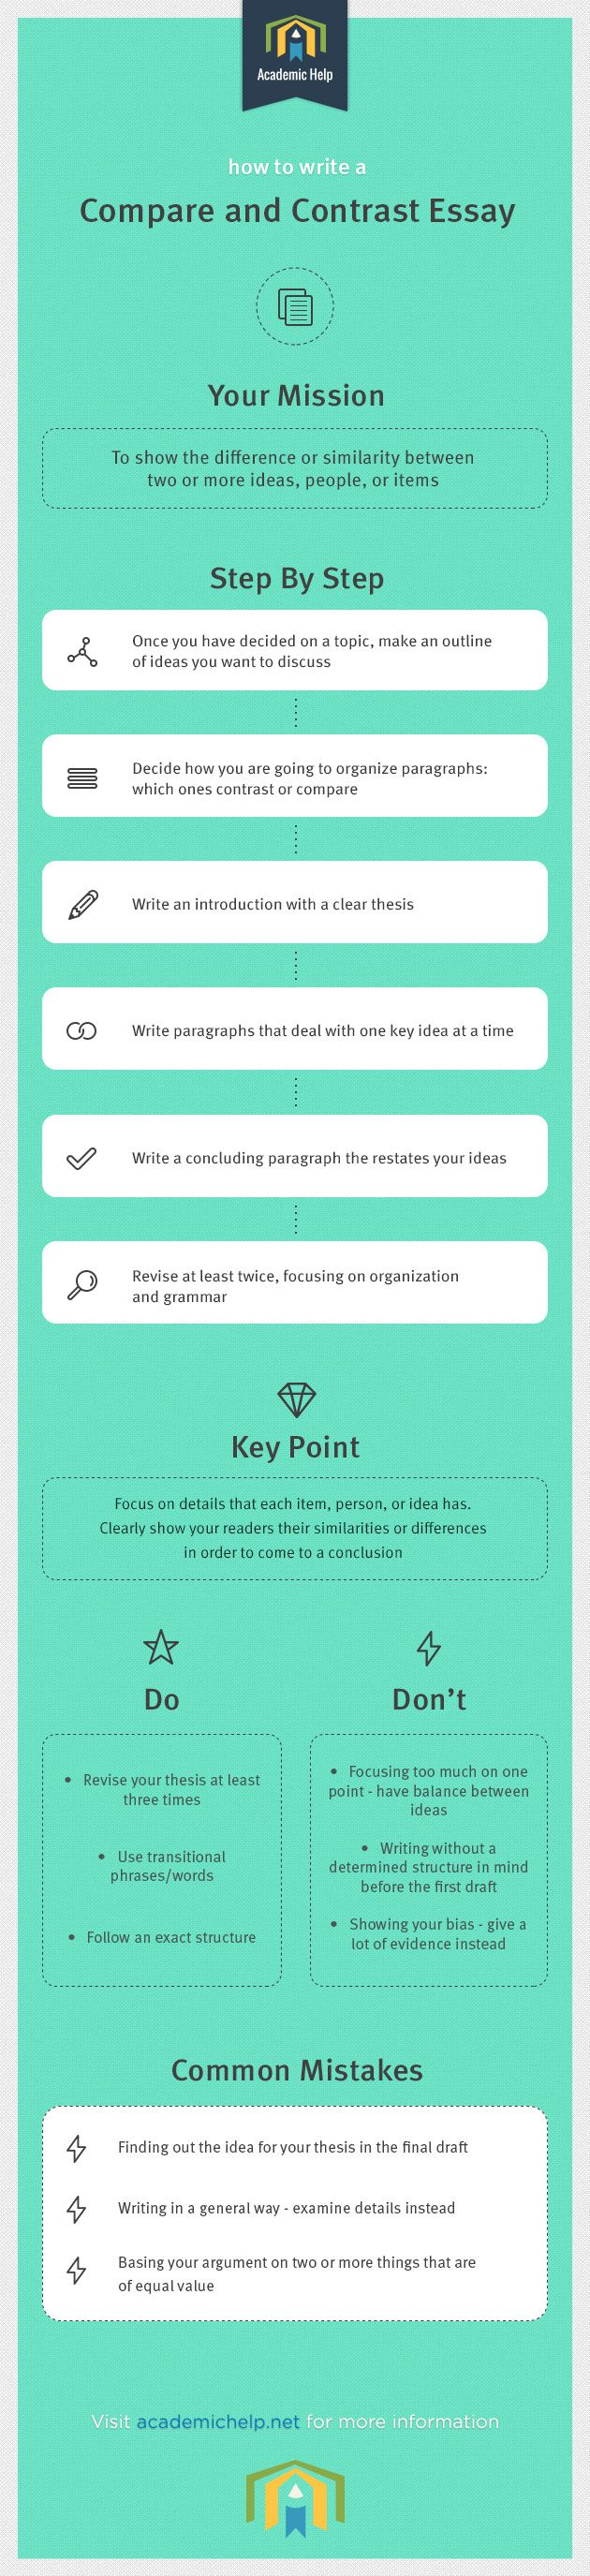 best images about compare contrast essay writing infographics on how to write a compare and contrast essay